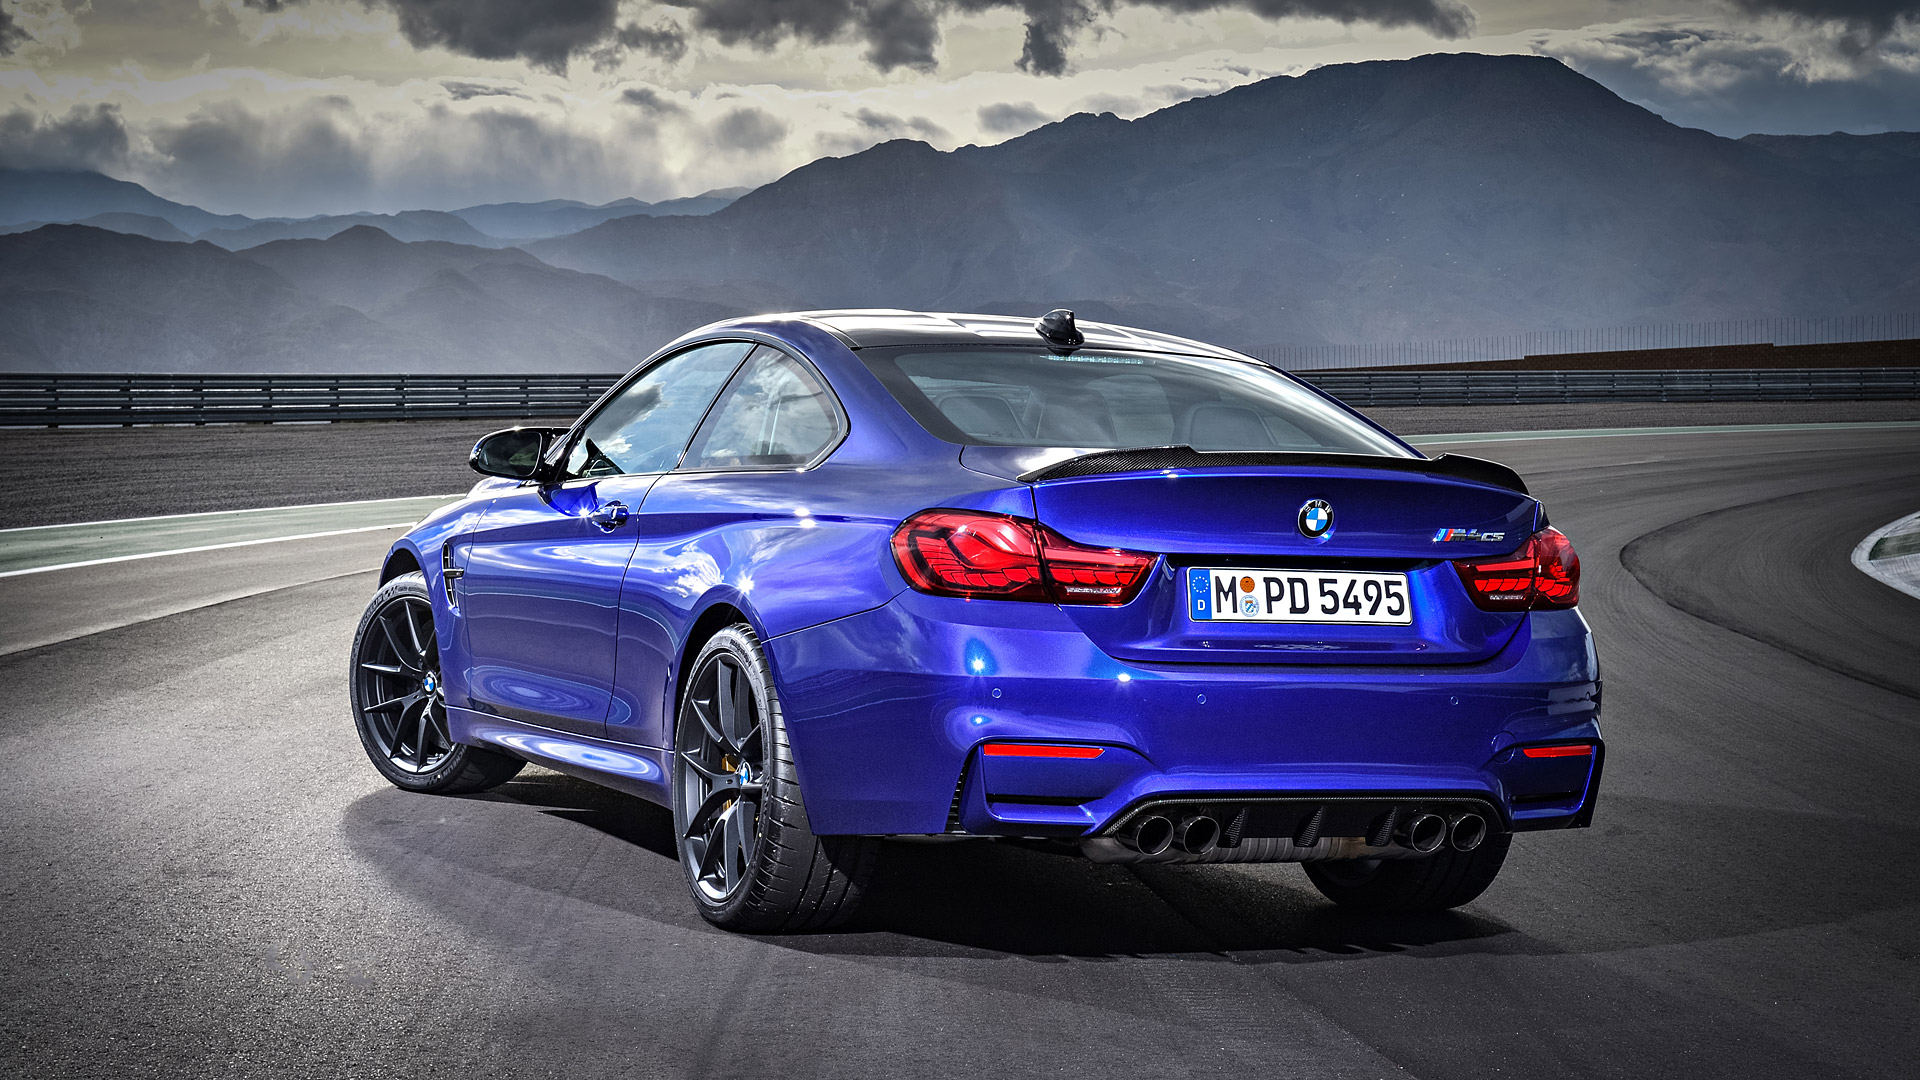 1920x1080 - BMW M4 Wallpapers 25